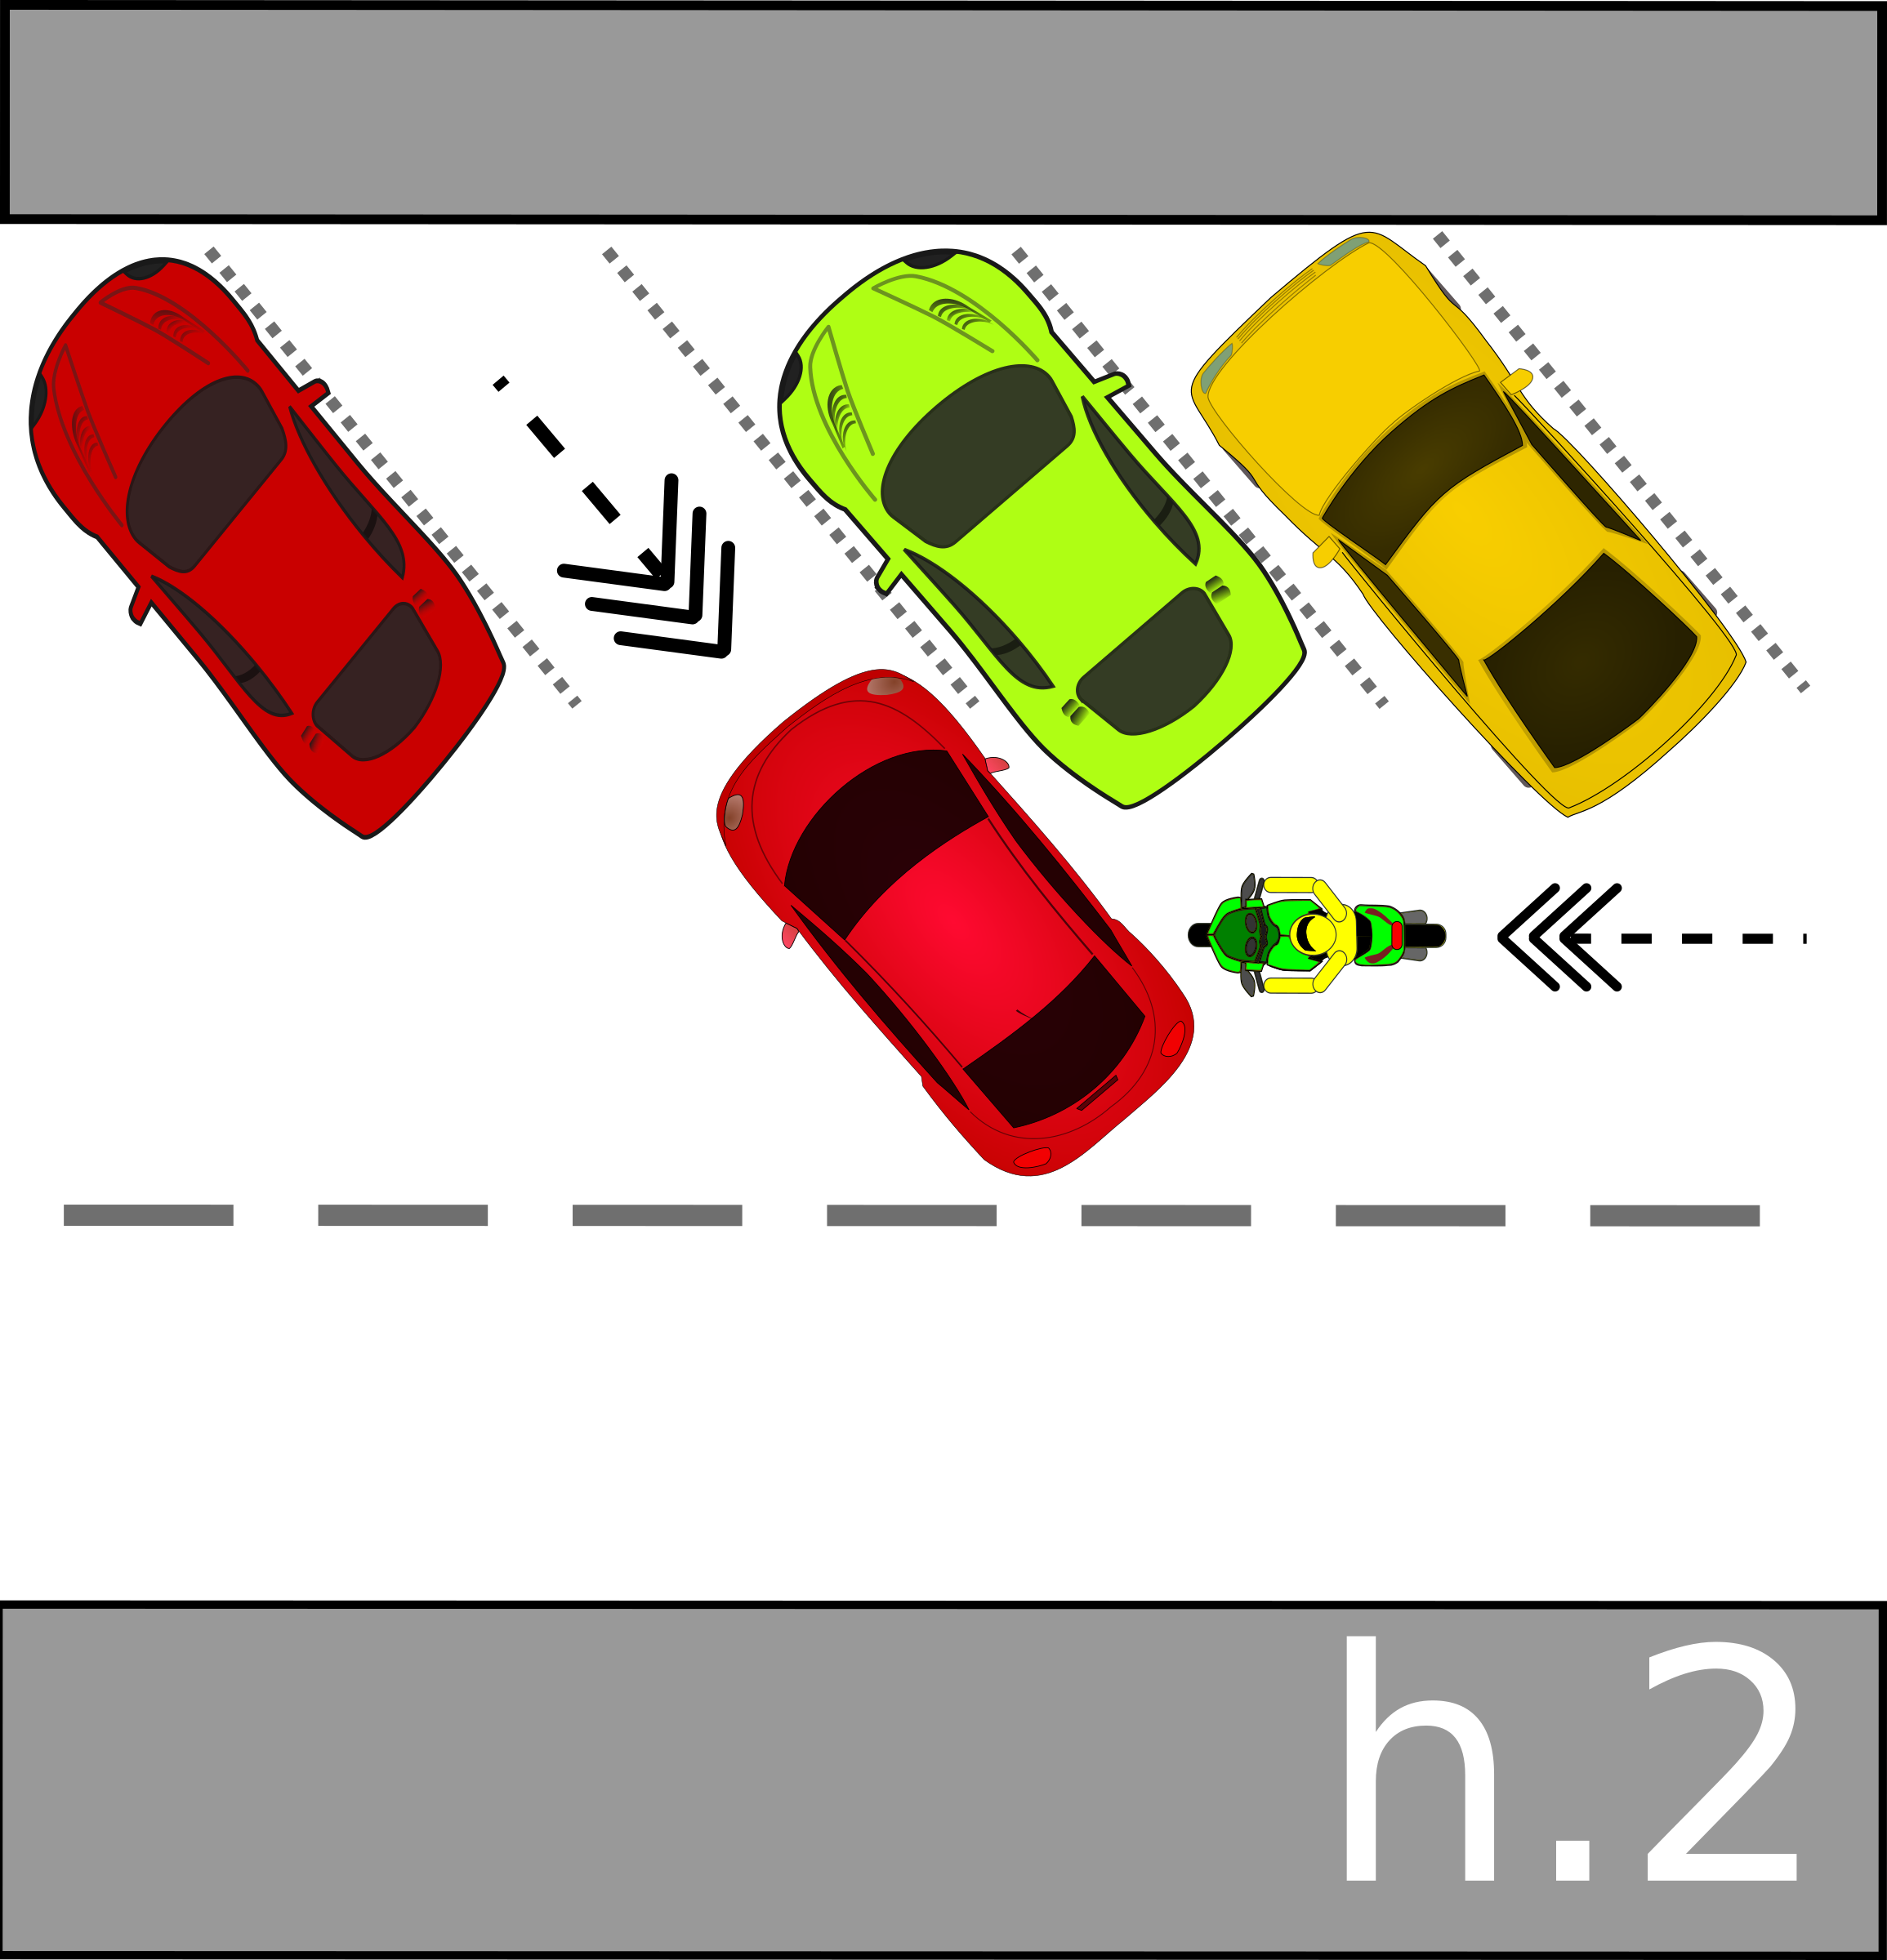 traffic accident pictograms h.2 by Gusta